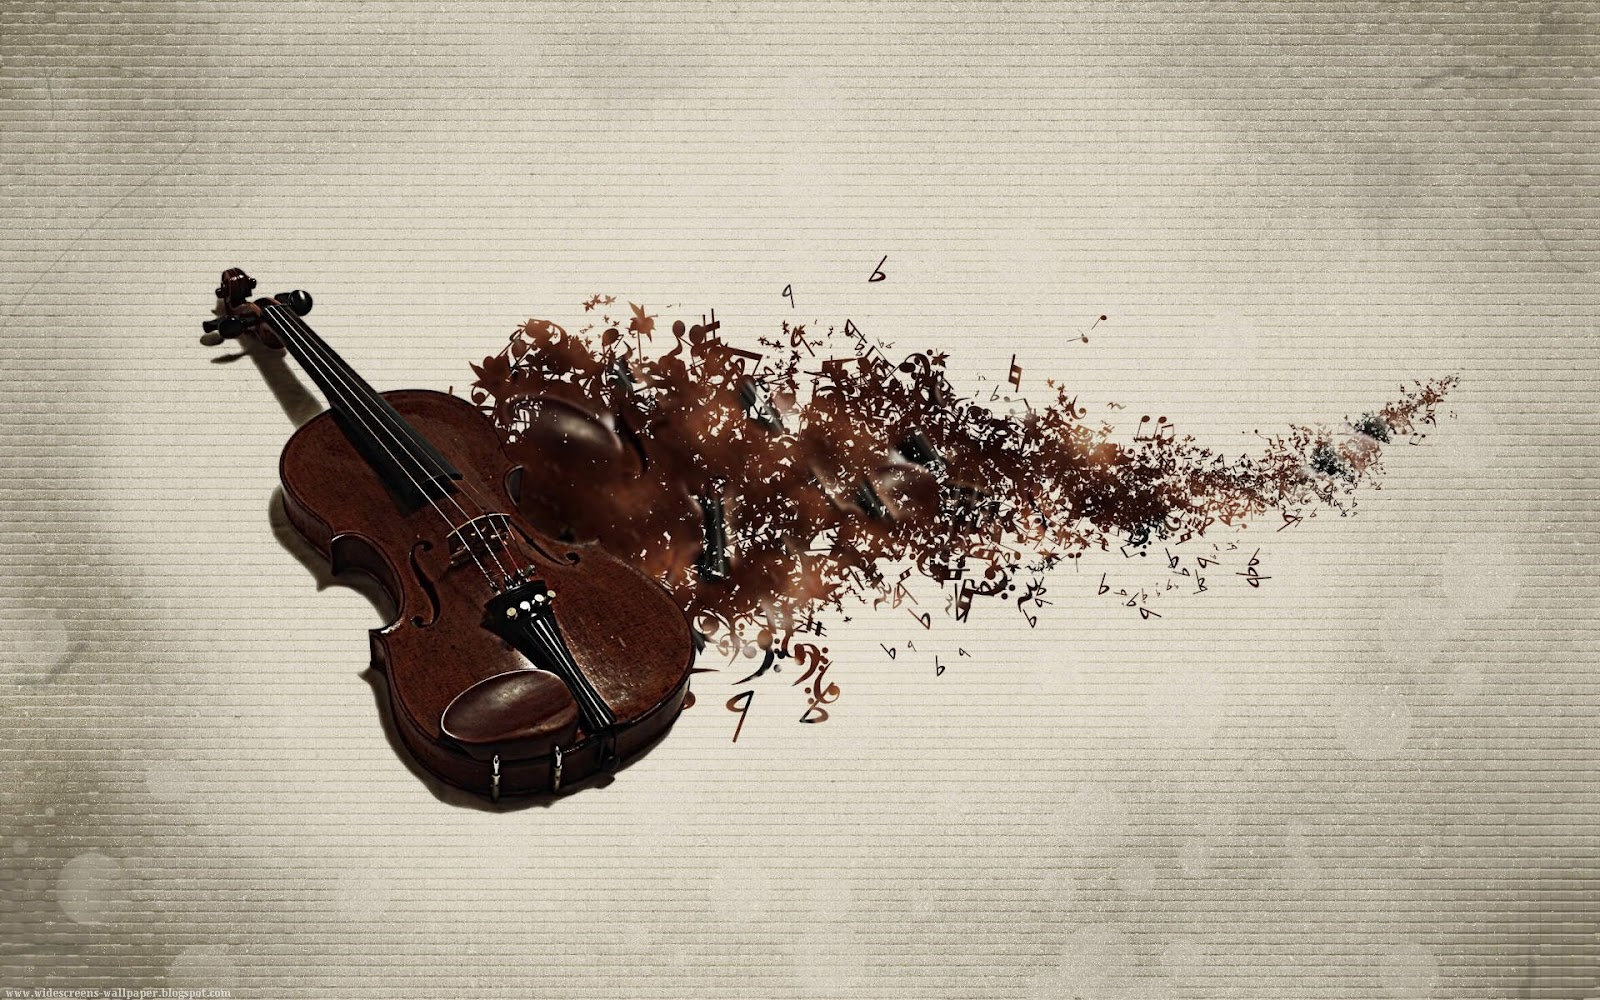 wallpapers violin violins music collection computer designs cool phones mobile backgrounds desktop pretty instrument